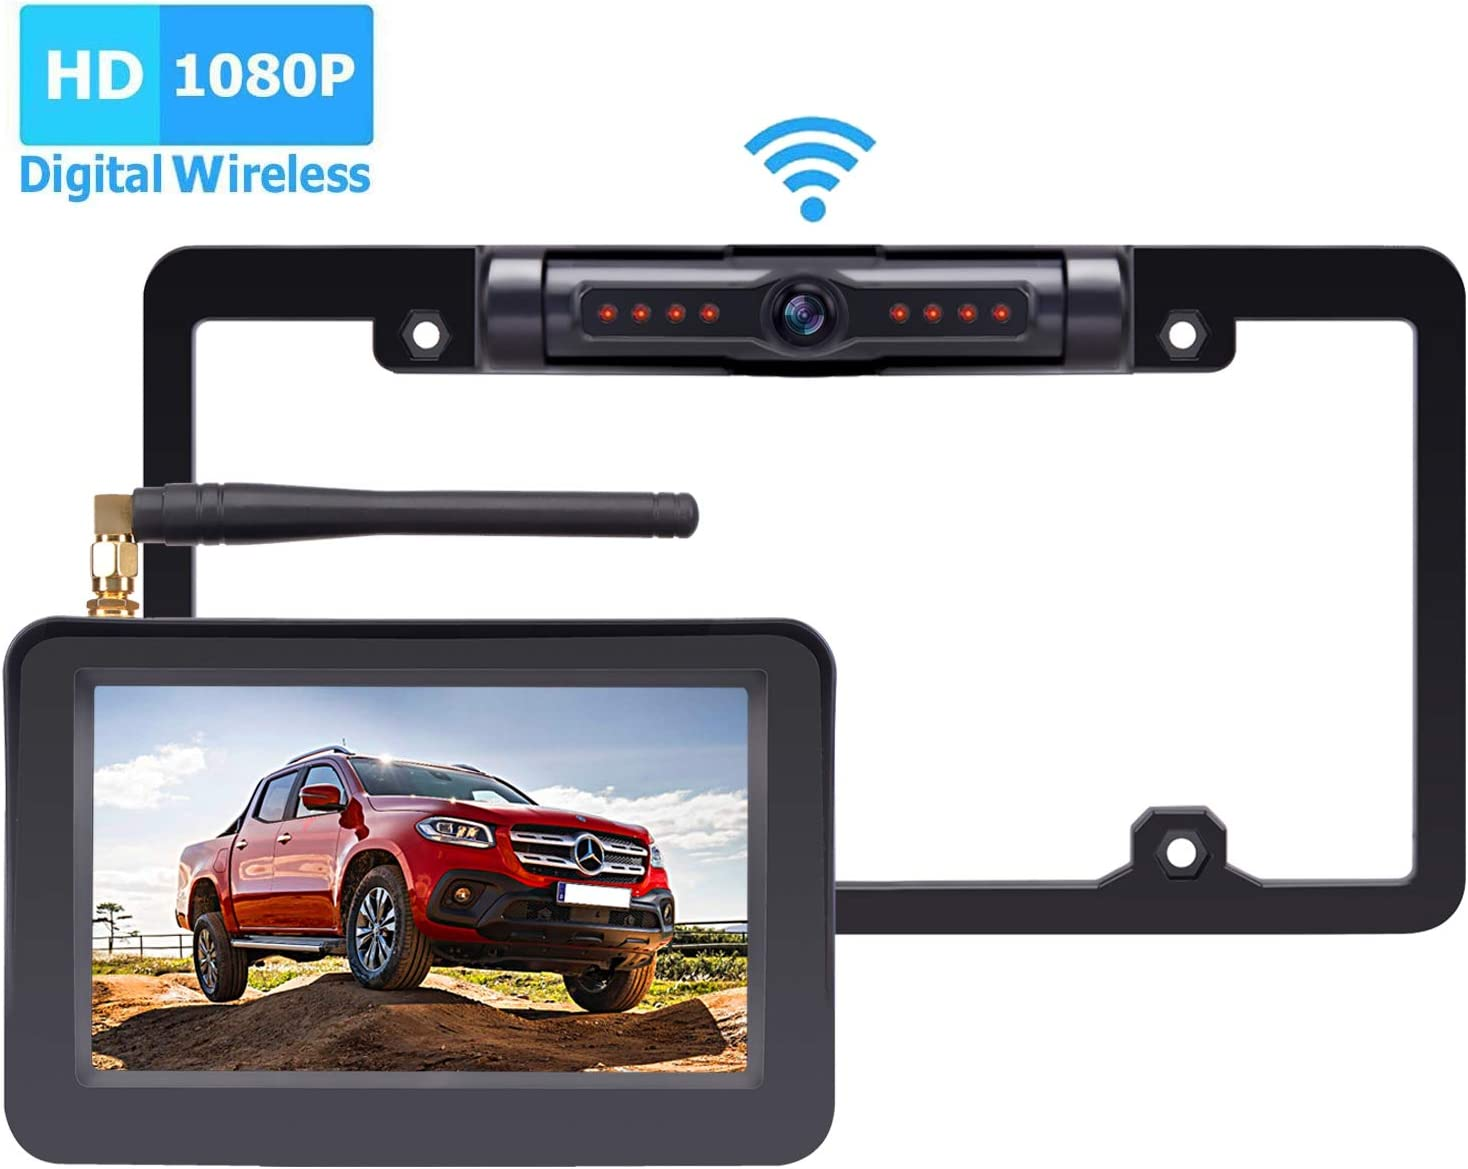 Yakry Y26 HD 1080P Digital Wireless Backup Camera System Kit 5'' Monitor Hitch Rear View License Plate Camera for Trucks,Campers,Vans,Cars High-Speed Observation System